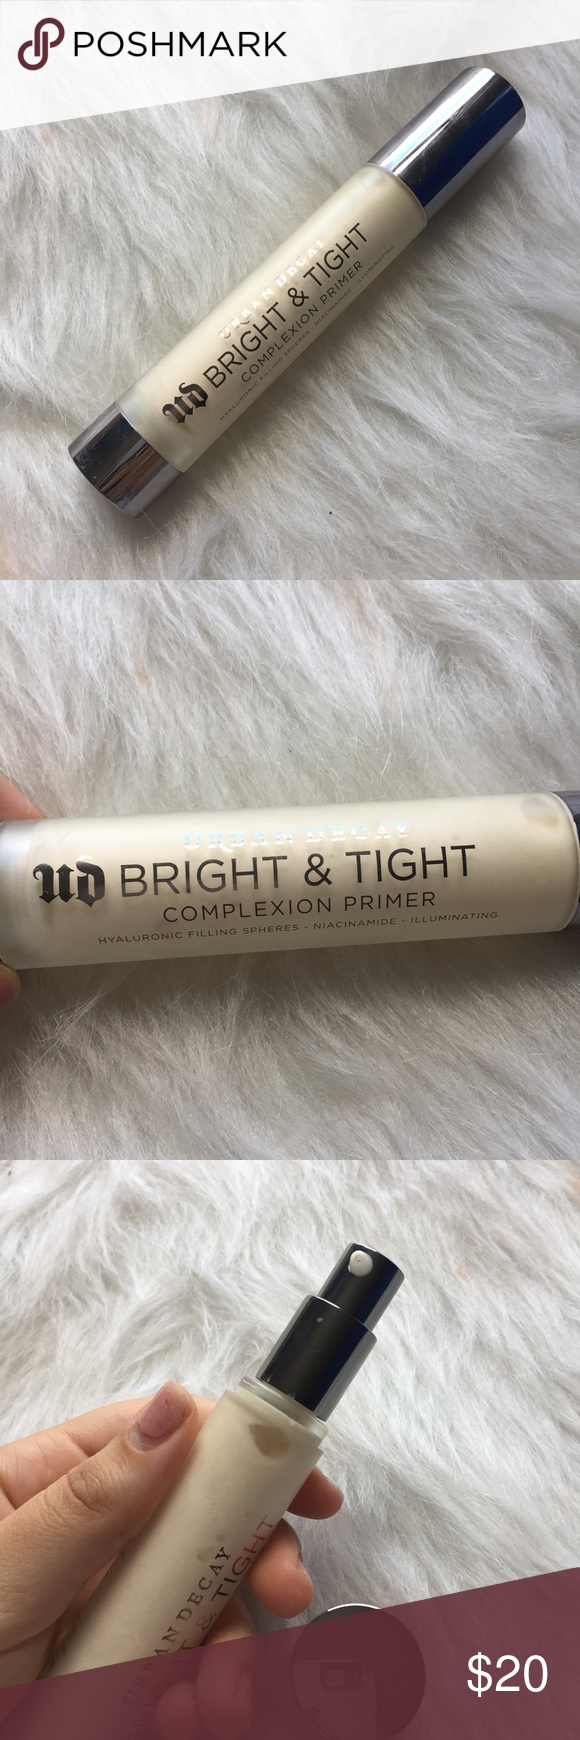 Urban Decay bright & tight complexion primer This primer has been used a couple of times.  Just looking to sell right now, so no trades. 🚫 I don't use any other sites to sell makeup. 🚫 I aim to ship same day. 📩 I always take the shipping price into consideration, please take the sellers fee into yours! 💸 Use the offer button, I might accept! I won't discuss prices in the comments & low ball offers will be ignored. 🗣 If you have any questions, please ask! 🙂 Urban Decay Makeup Face…